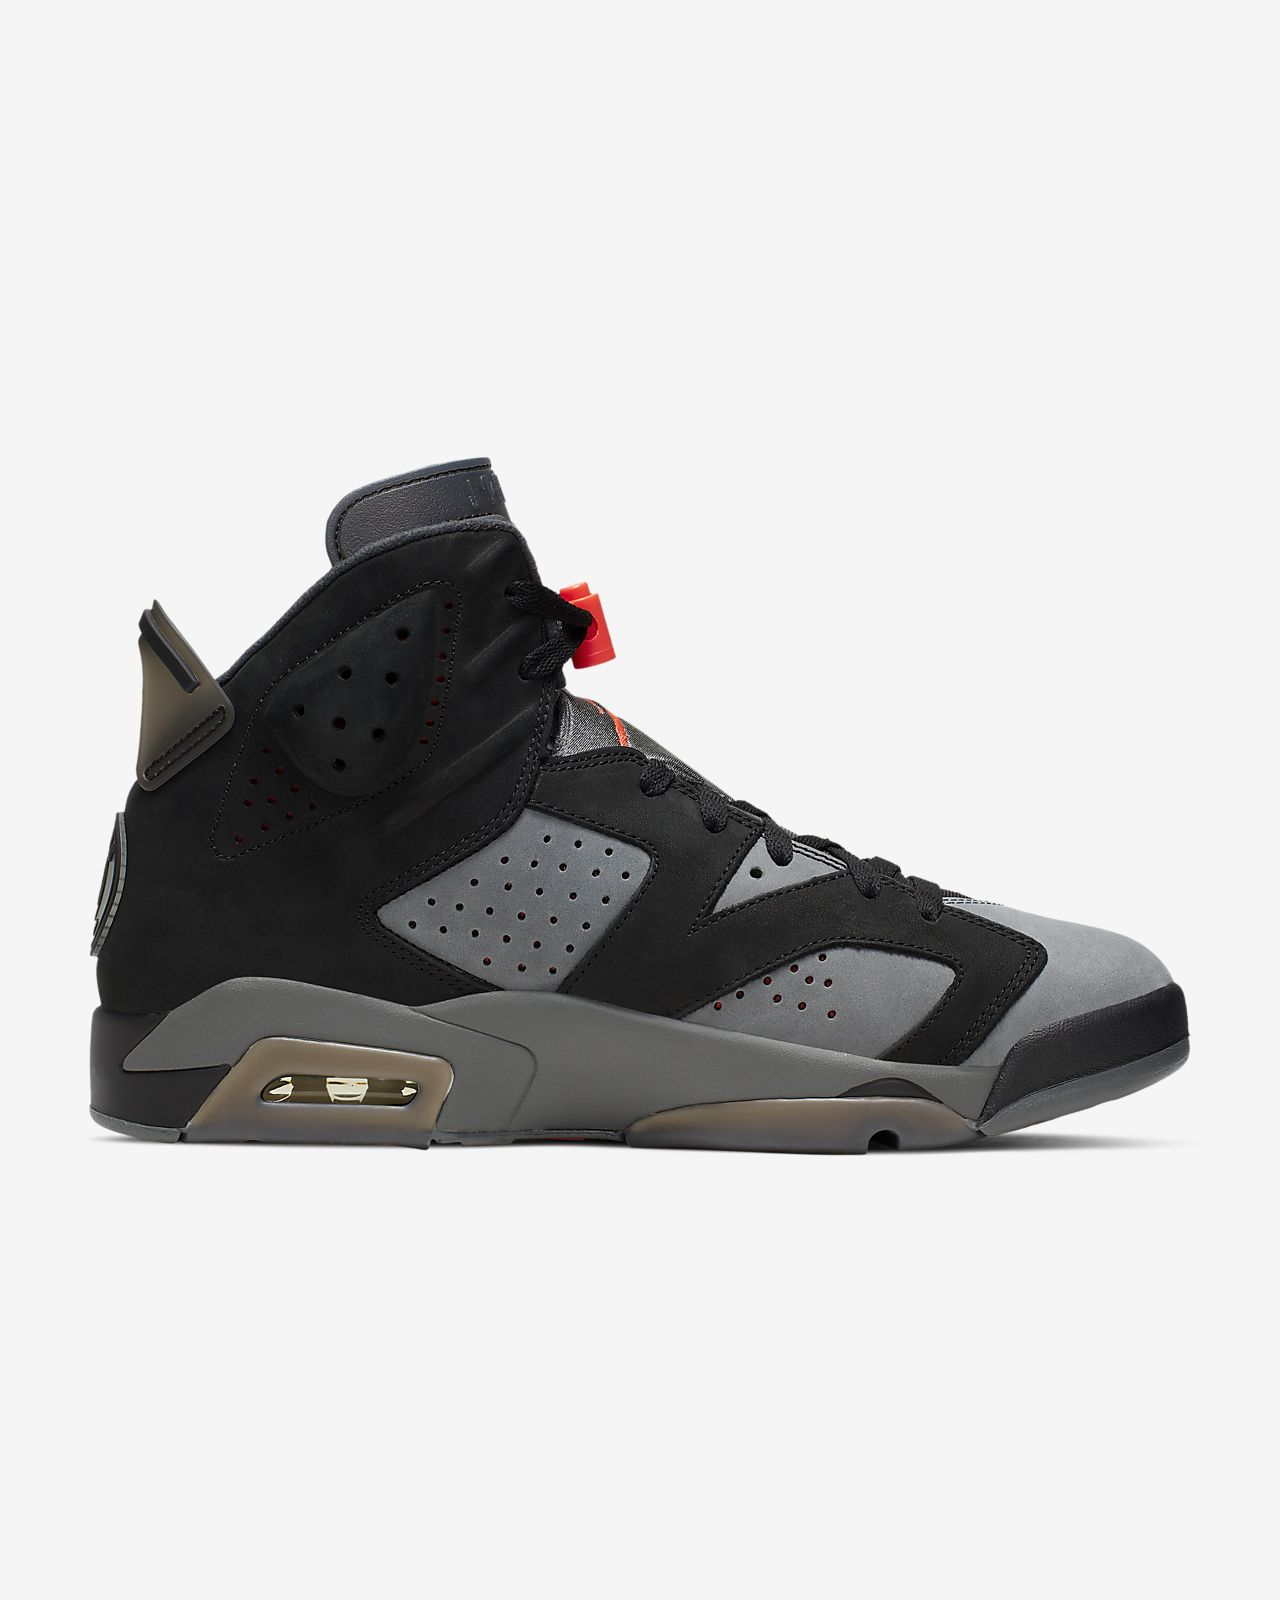 reputable site 85735 df37b Air Jordan 6 Retro Paris Saint-Germain Men's Shoe